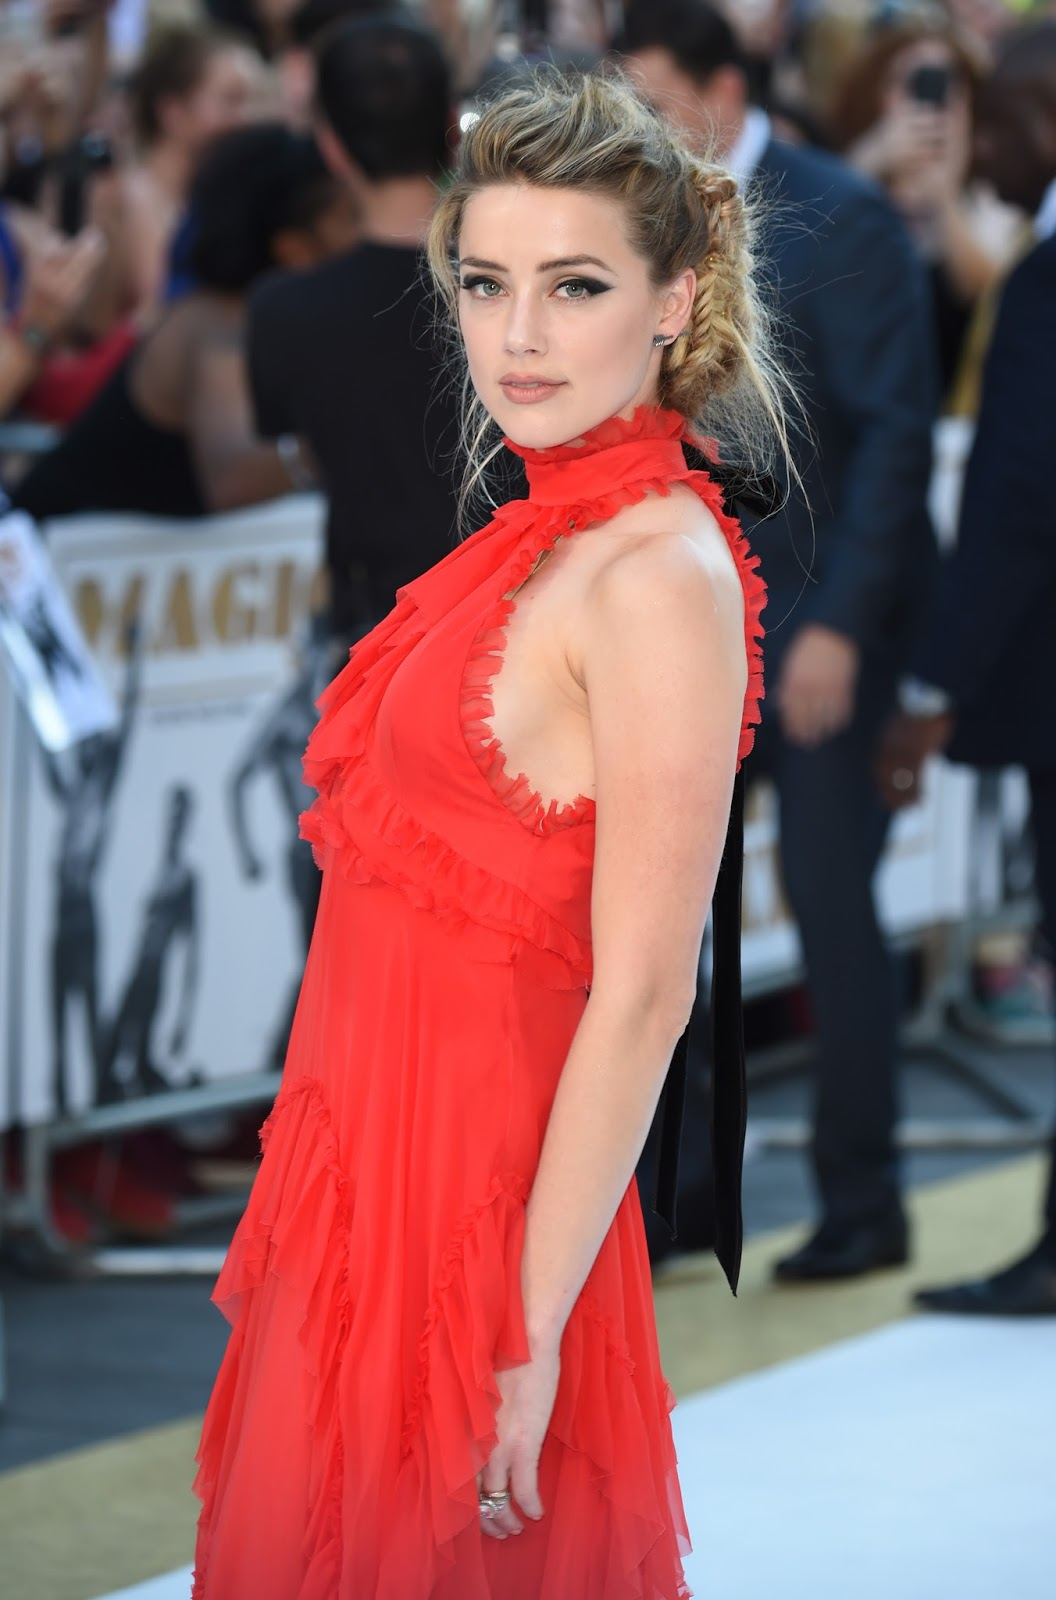 Amber Heard at London Premiere of 'Magic Mike XXL'